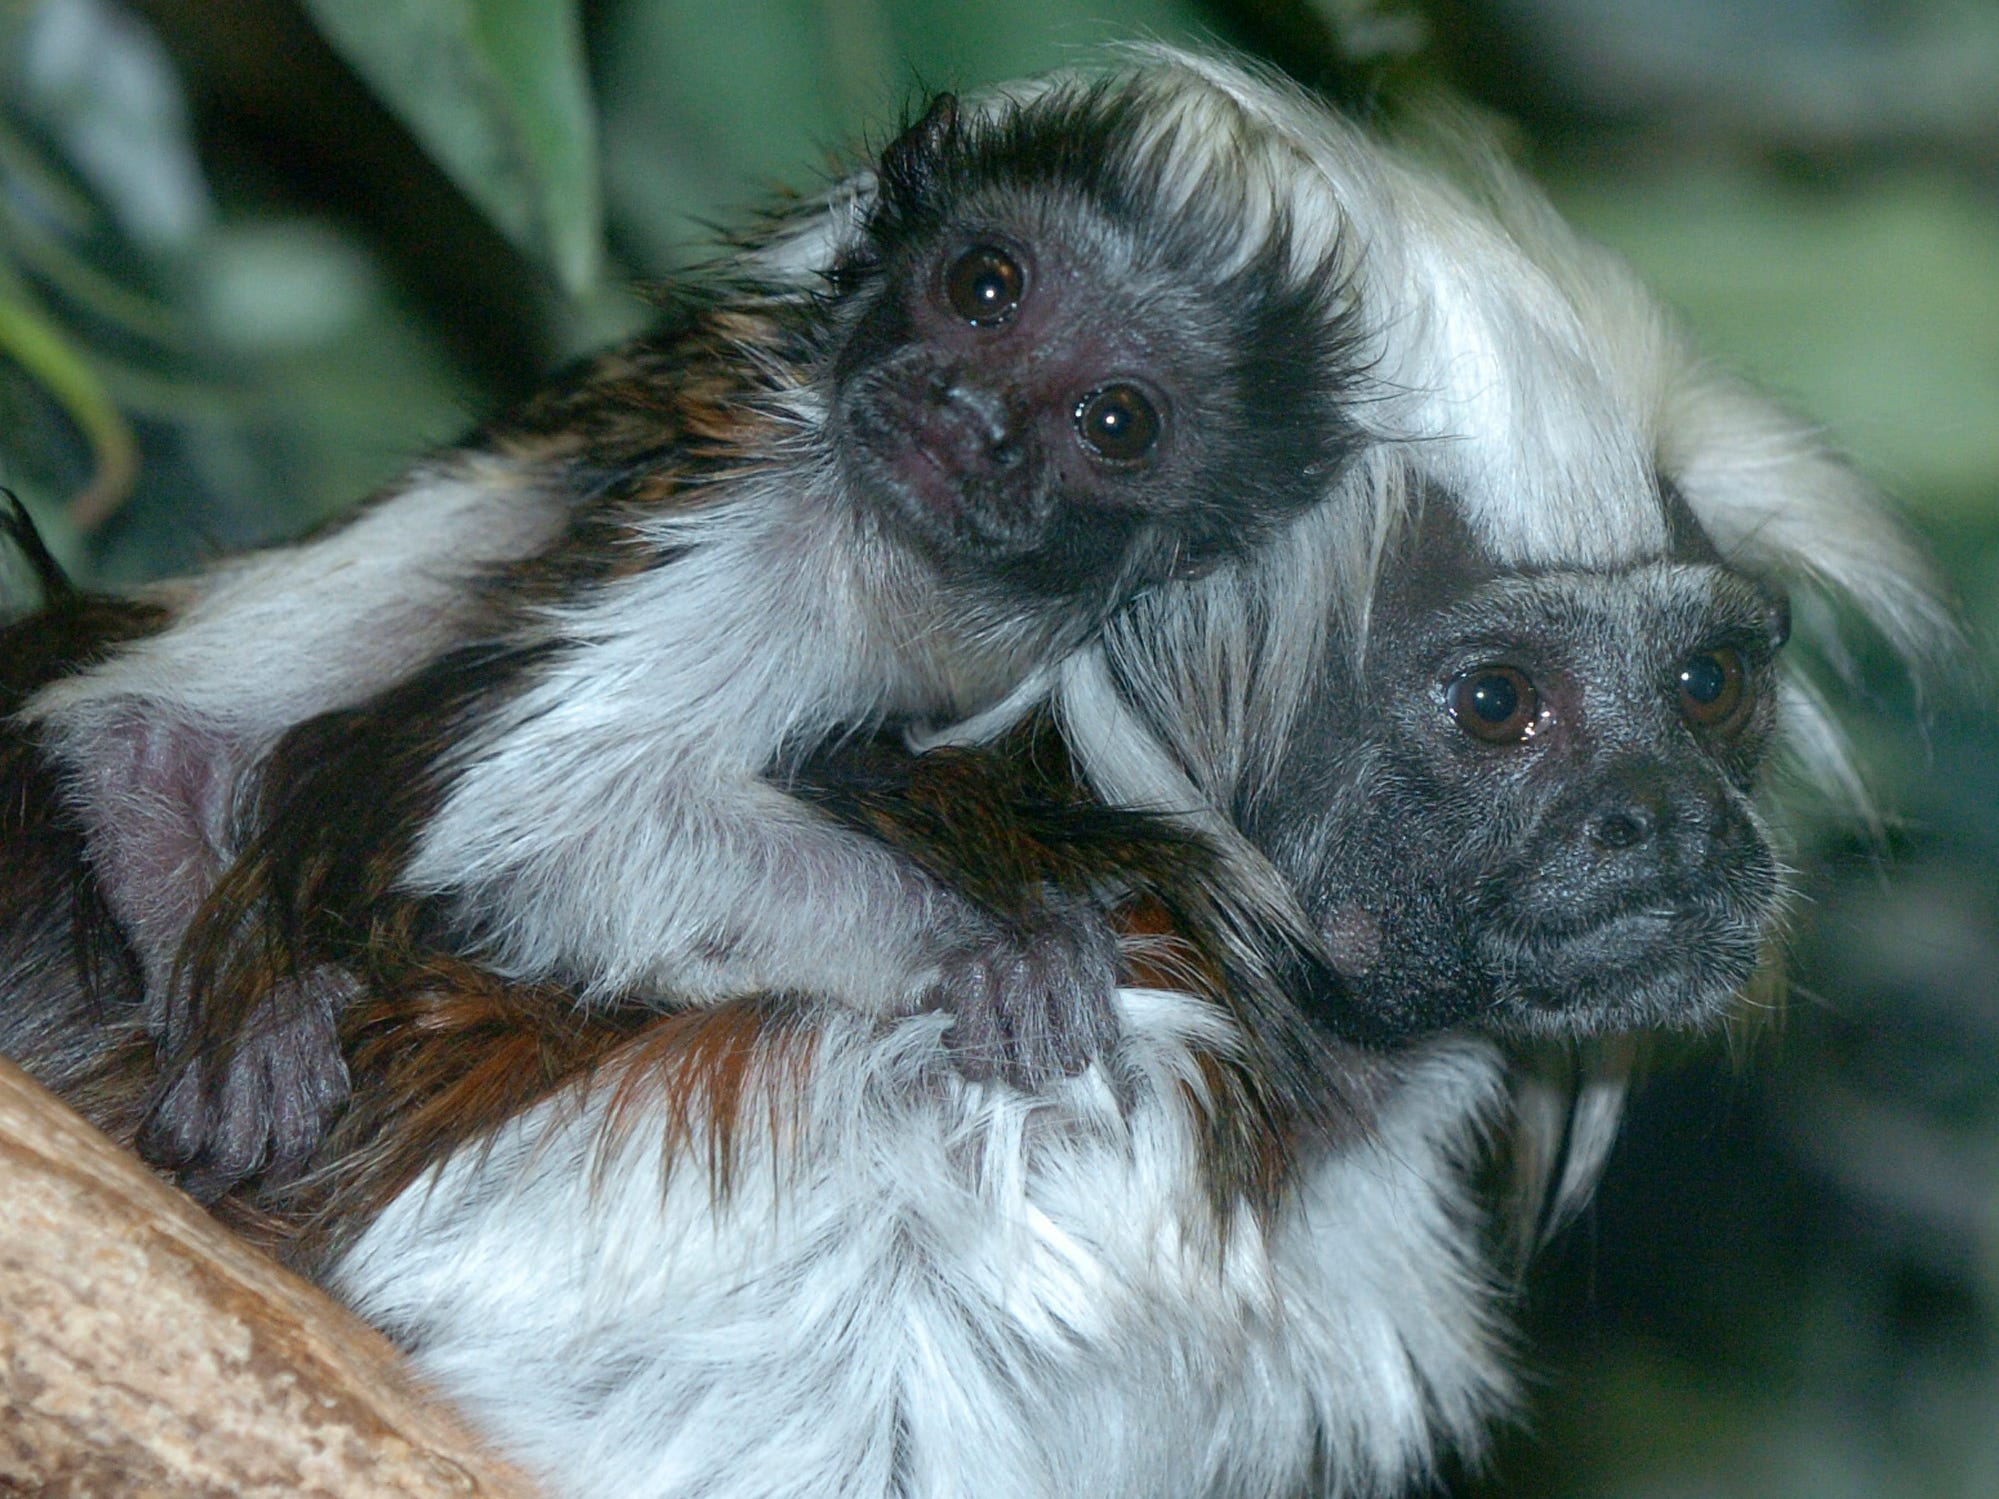 A baby cotton top tamarin and its mother in 2007.